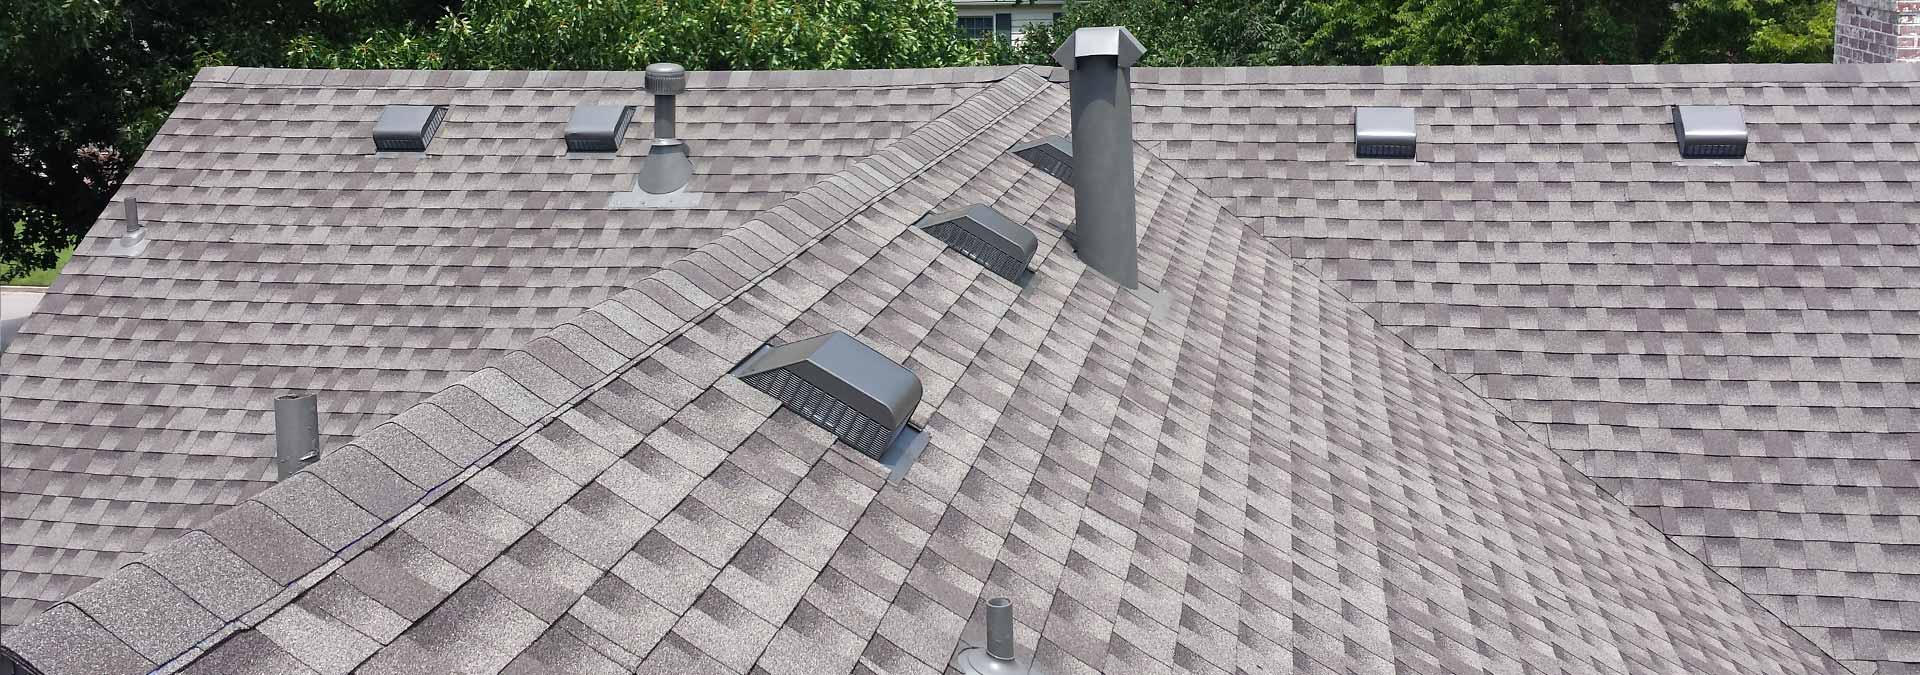 Roofing in Tulsa